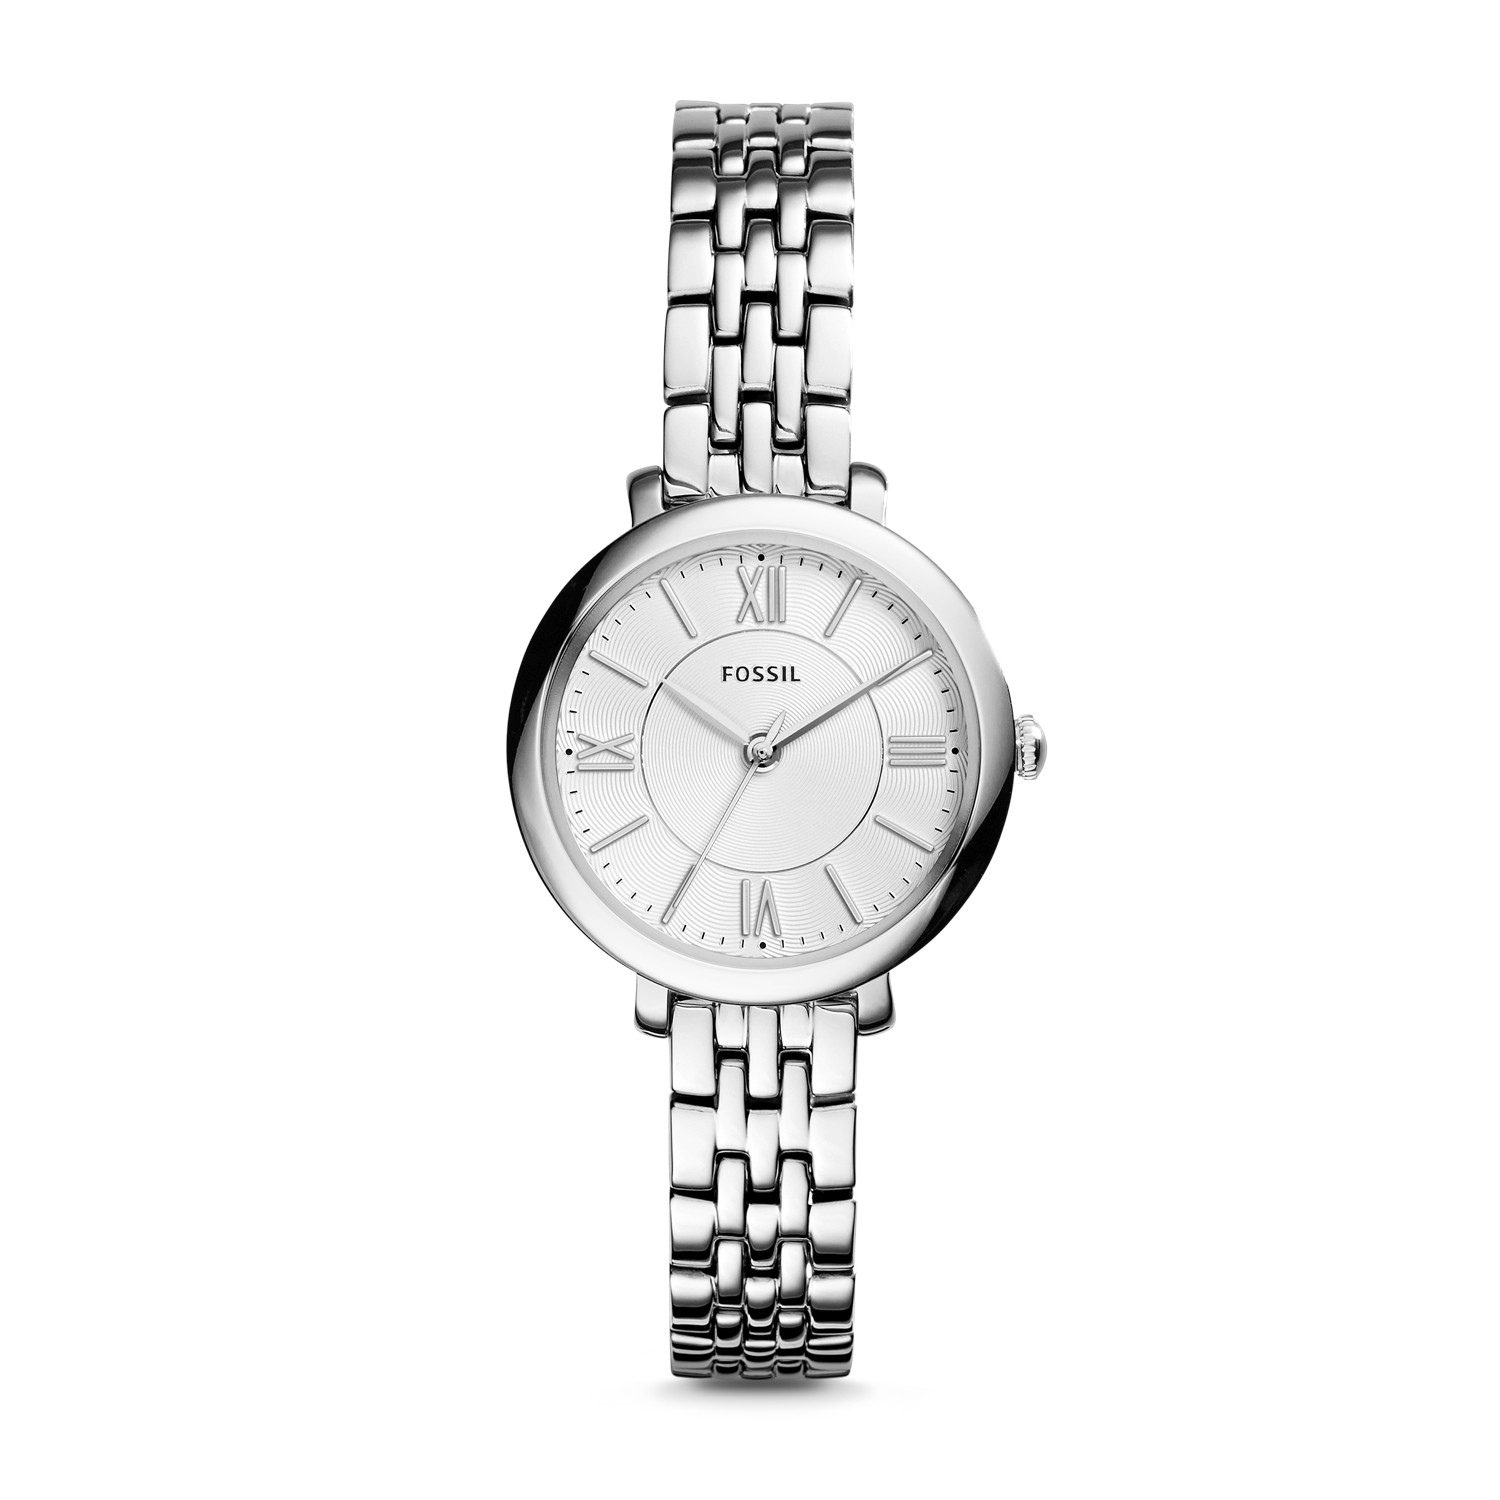 5122d672bd1 Jacqueline Mini Stainless Steel Watch - Fossil